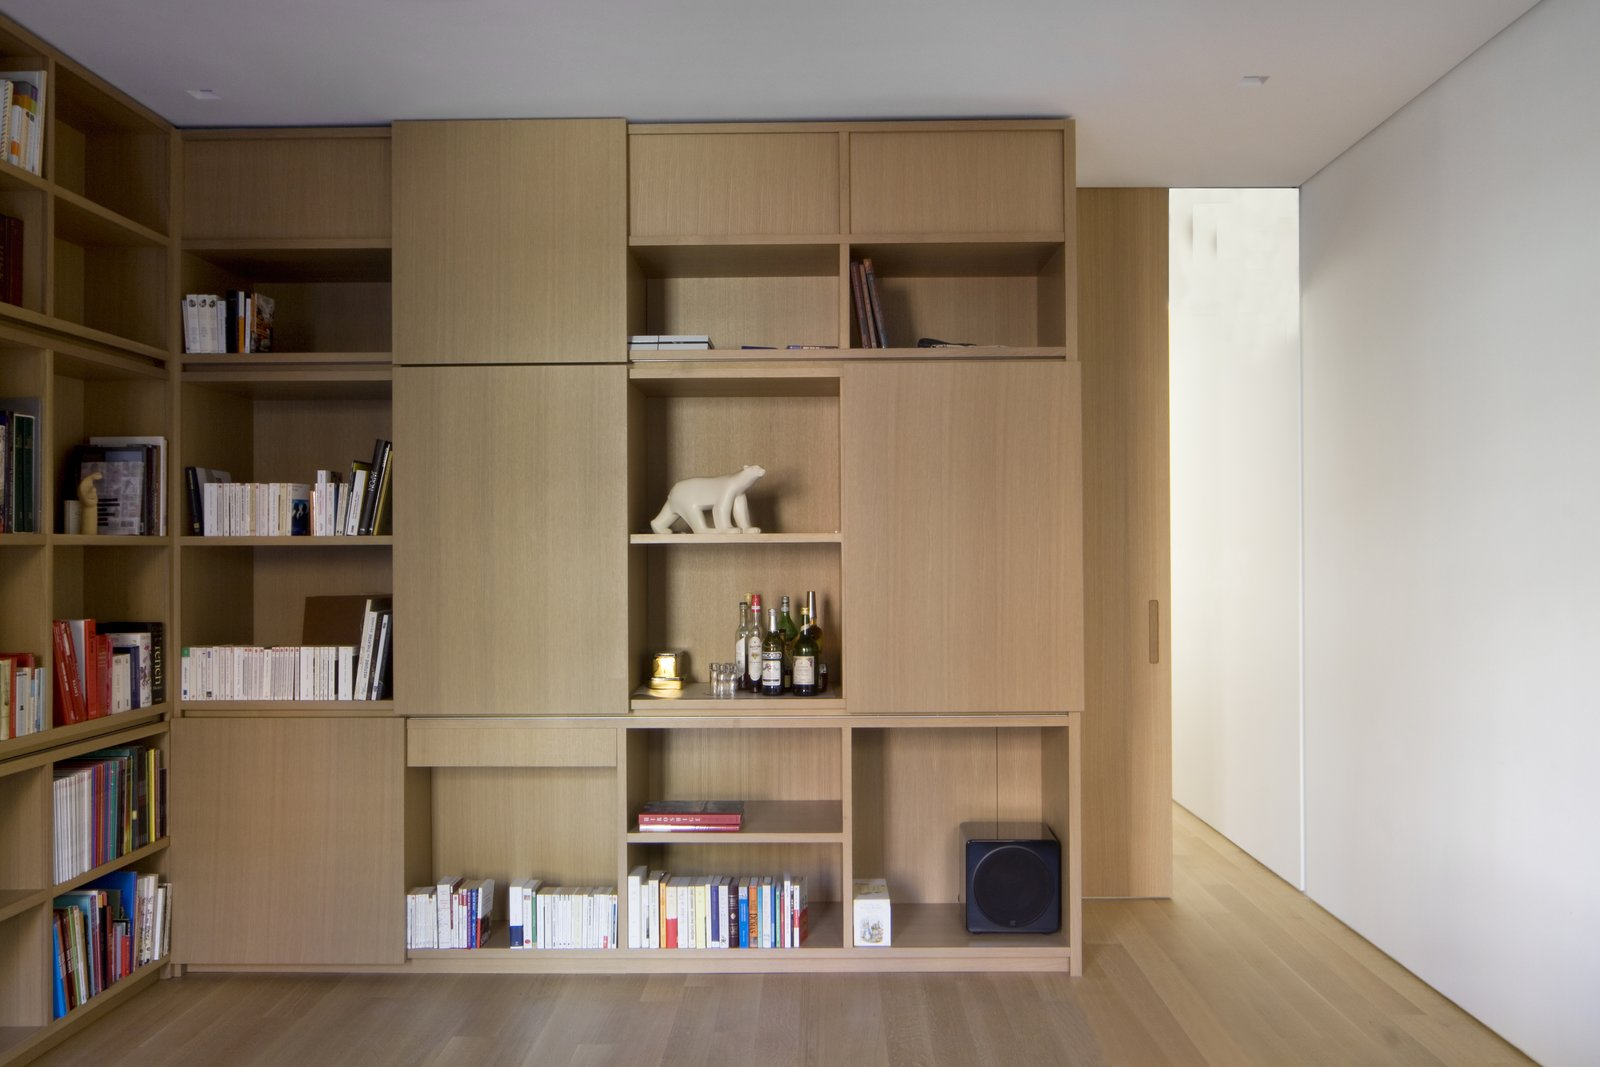 Storage Room and Shelves Storage Type More custom millwork features asymmetrical shelving and closed storage spaces with sliding panels on HAFELE sliding tracks. A 10-inch matching pocket door provides privacy when desired without interrupting the space.  White Oak by Maura Lucking